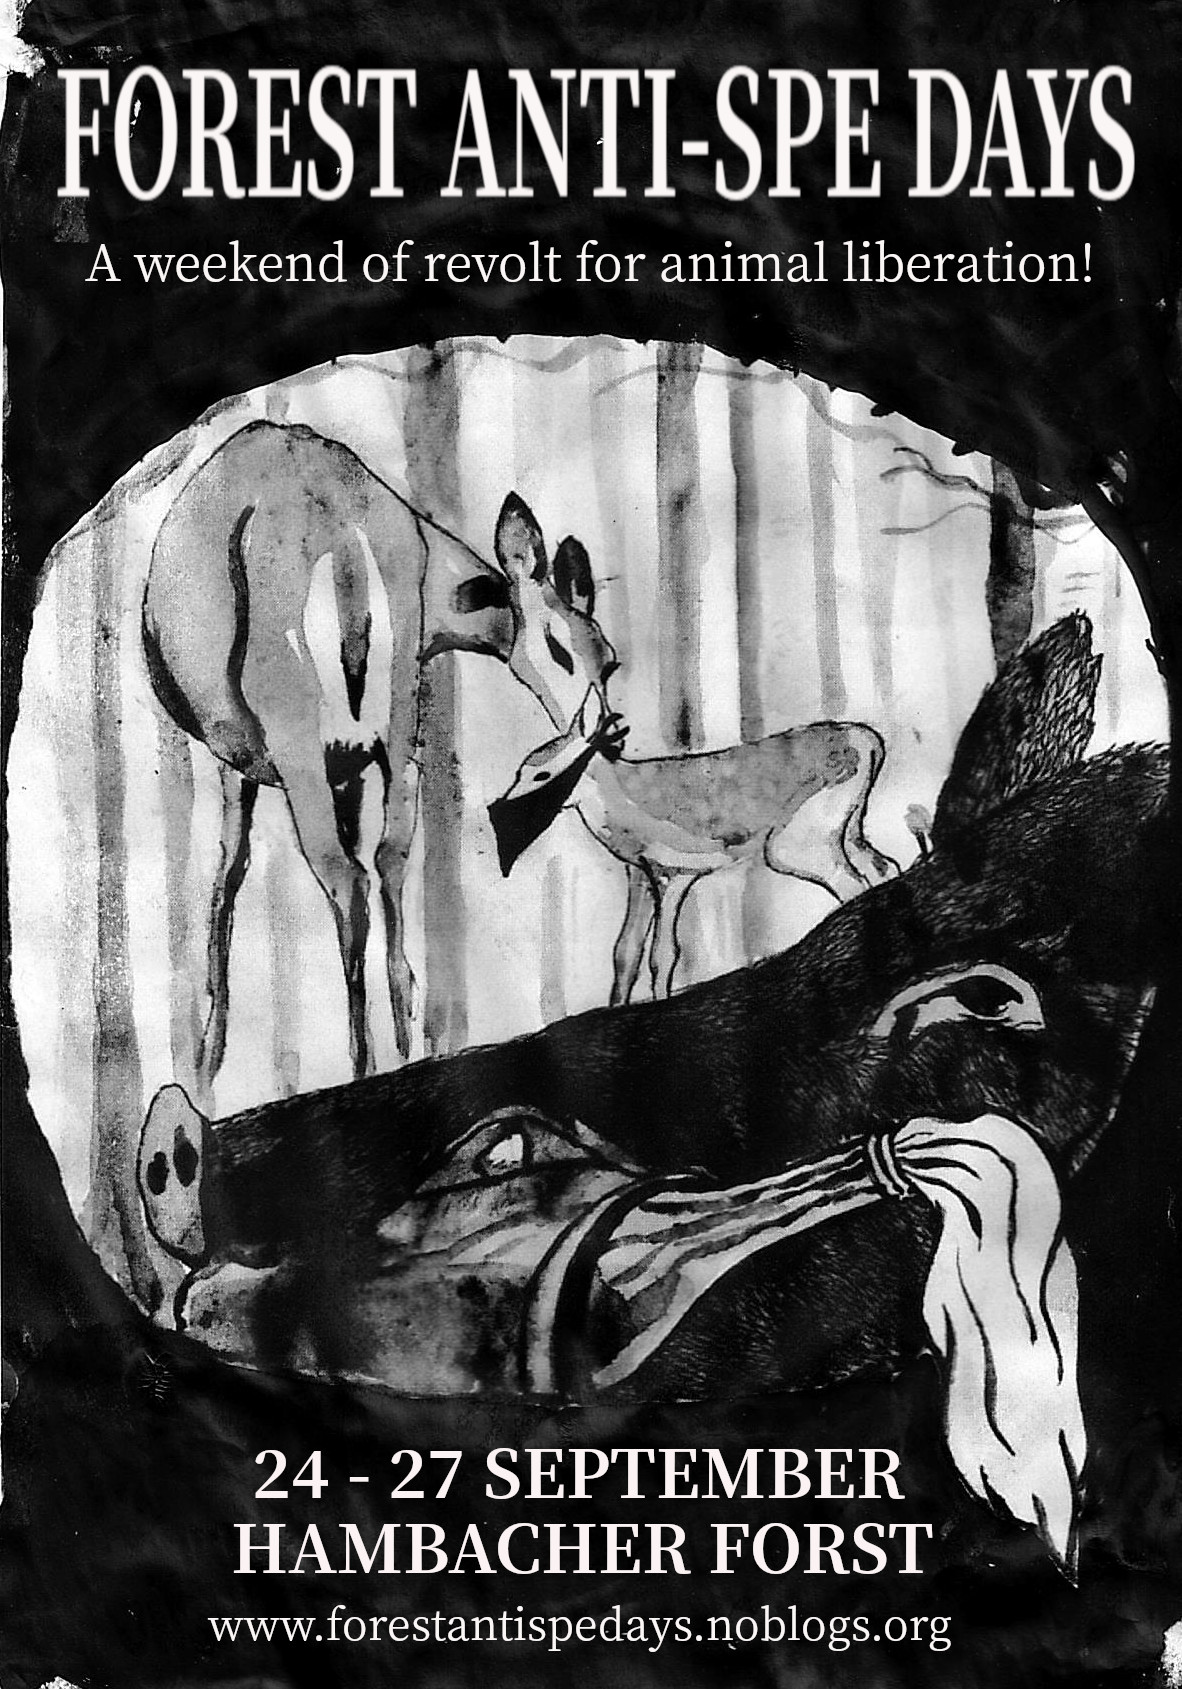 Image shows a poster for the event with an illustration of deer